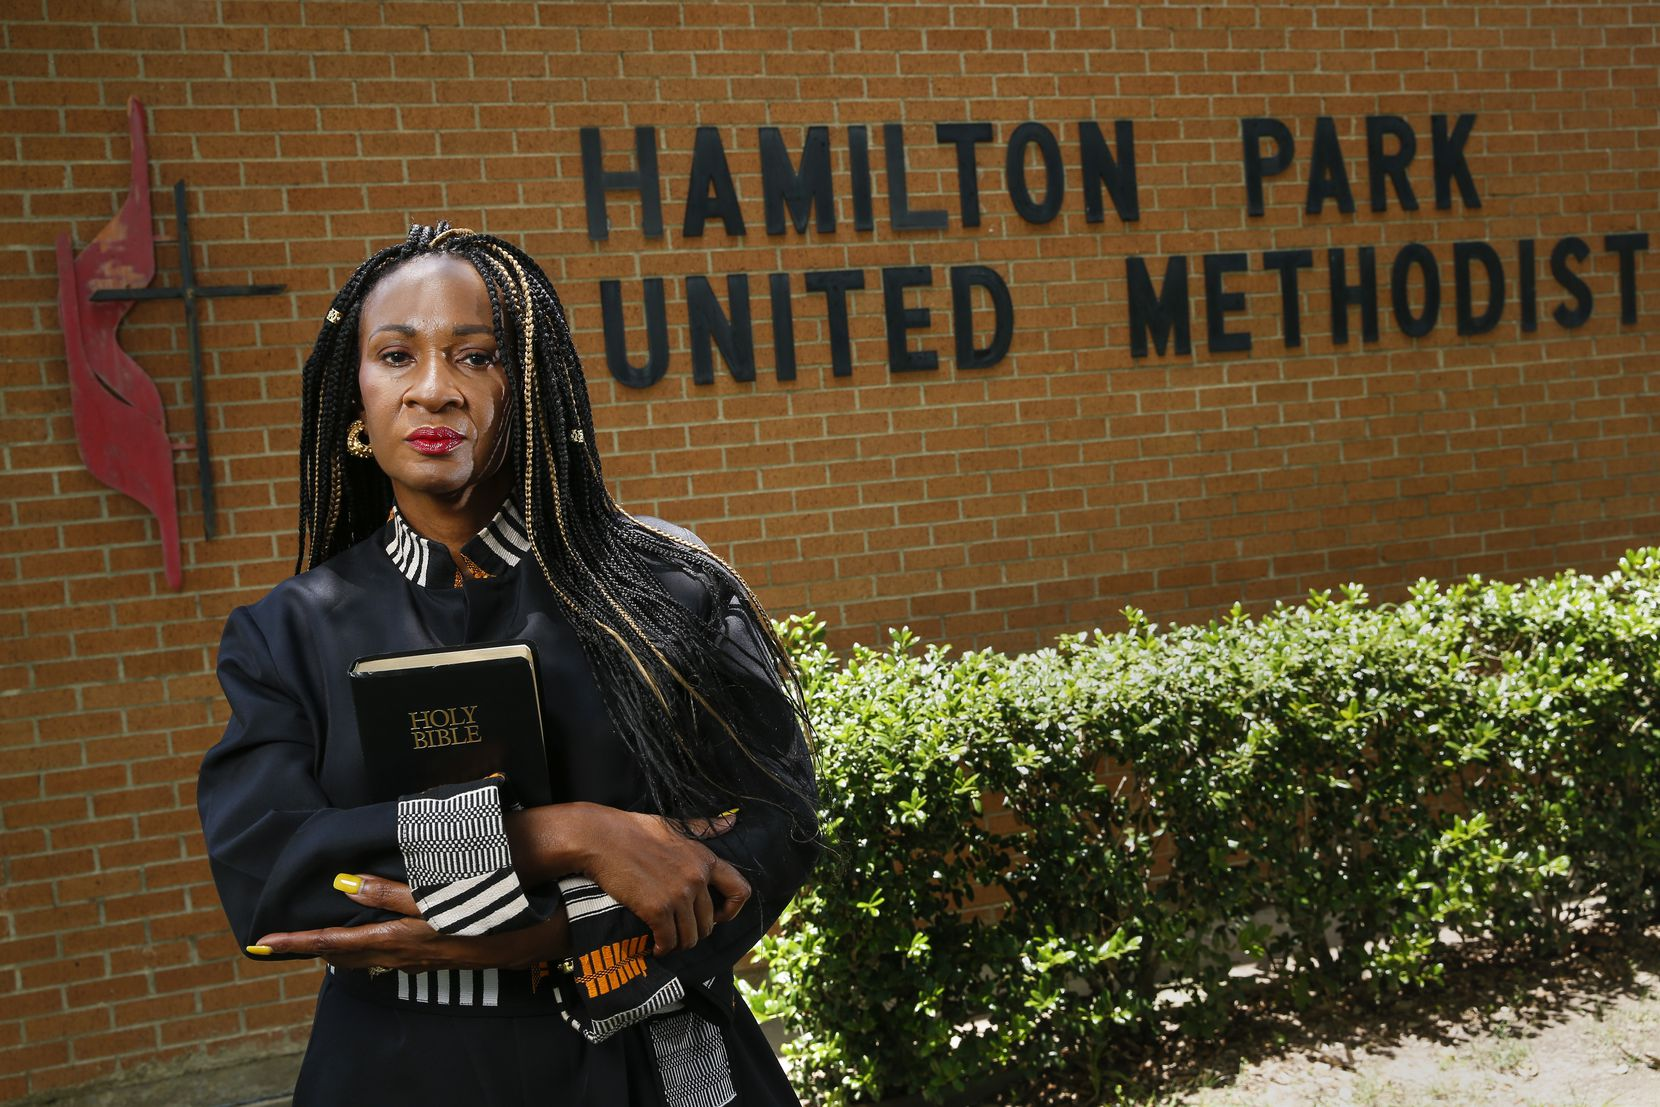 Senior Pastor Sheron Patterson at Hamilton Park United Methodist Church on Wednesday, June 3, 2020 in Dallas.   Psalm 27:1  - The Lord is my light and my salvation — whom shall I fear? The Lord is the stronghold of my life — of whom shall I be afraid?